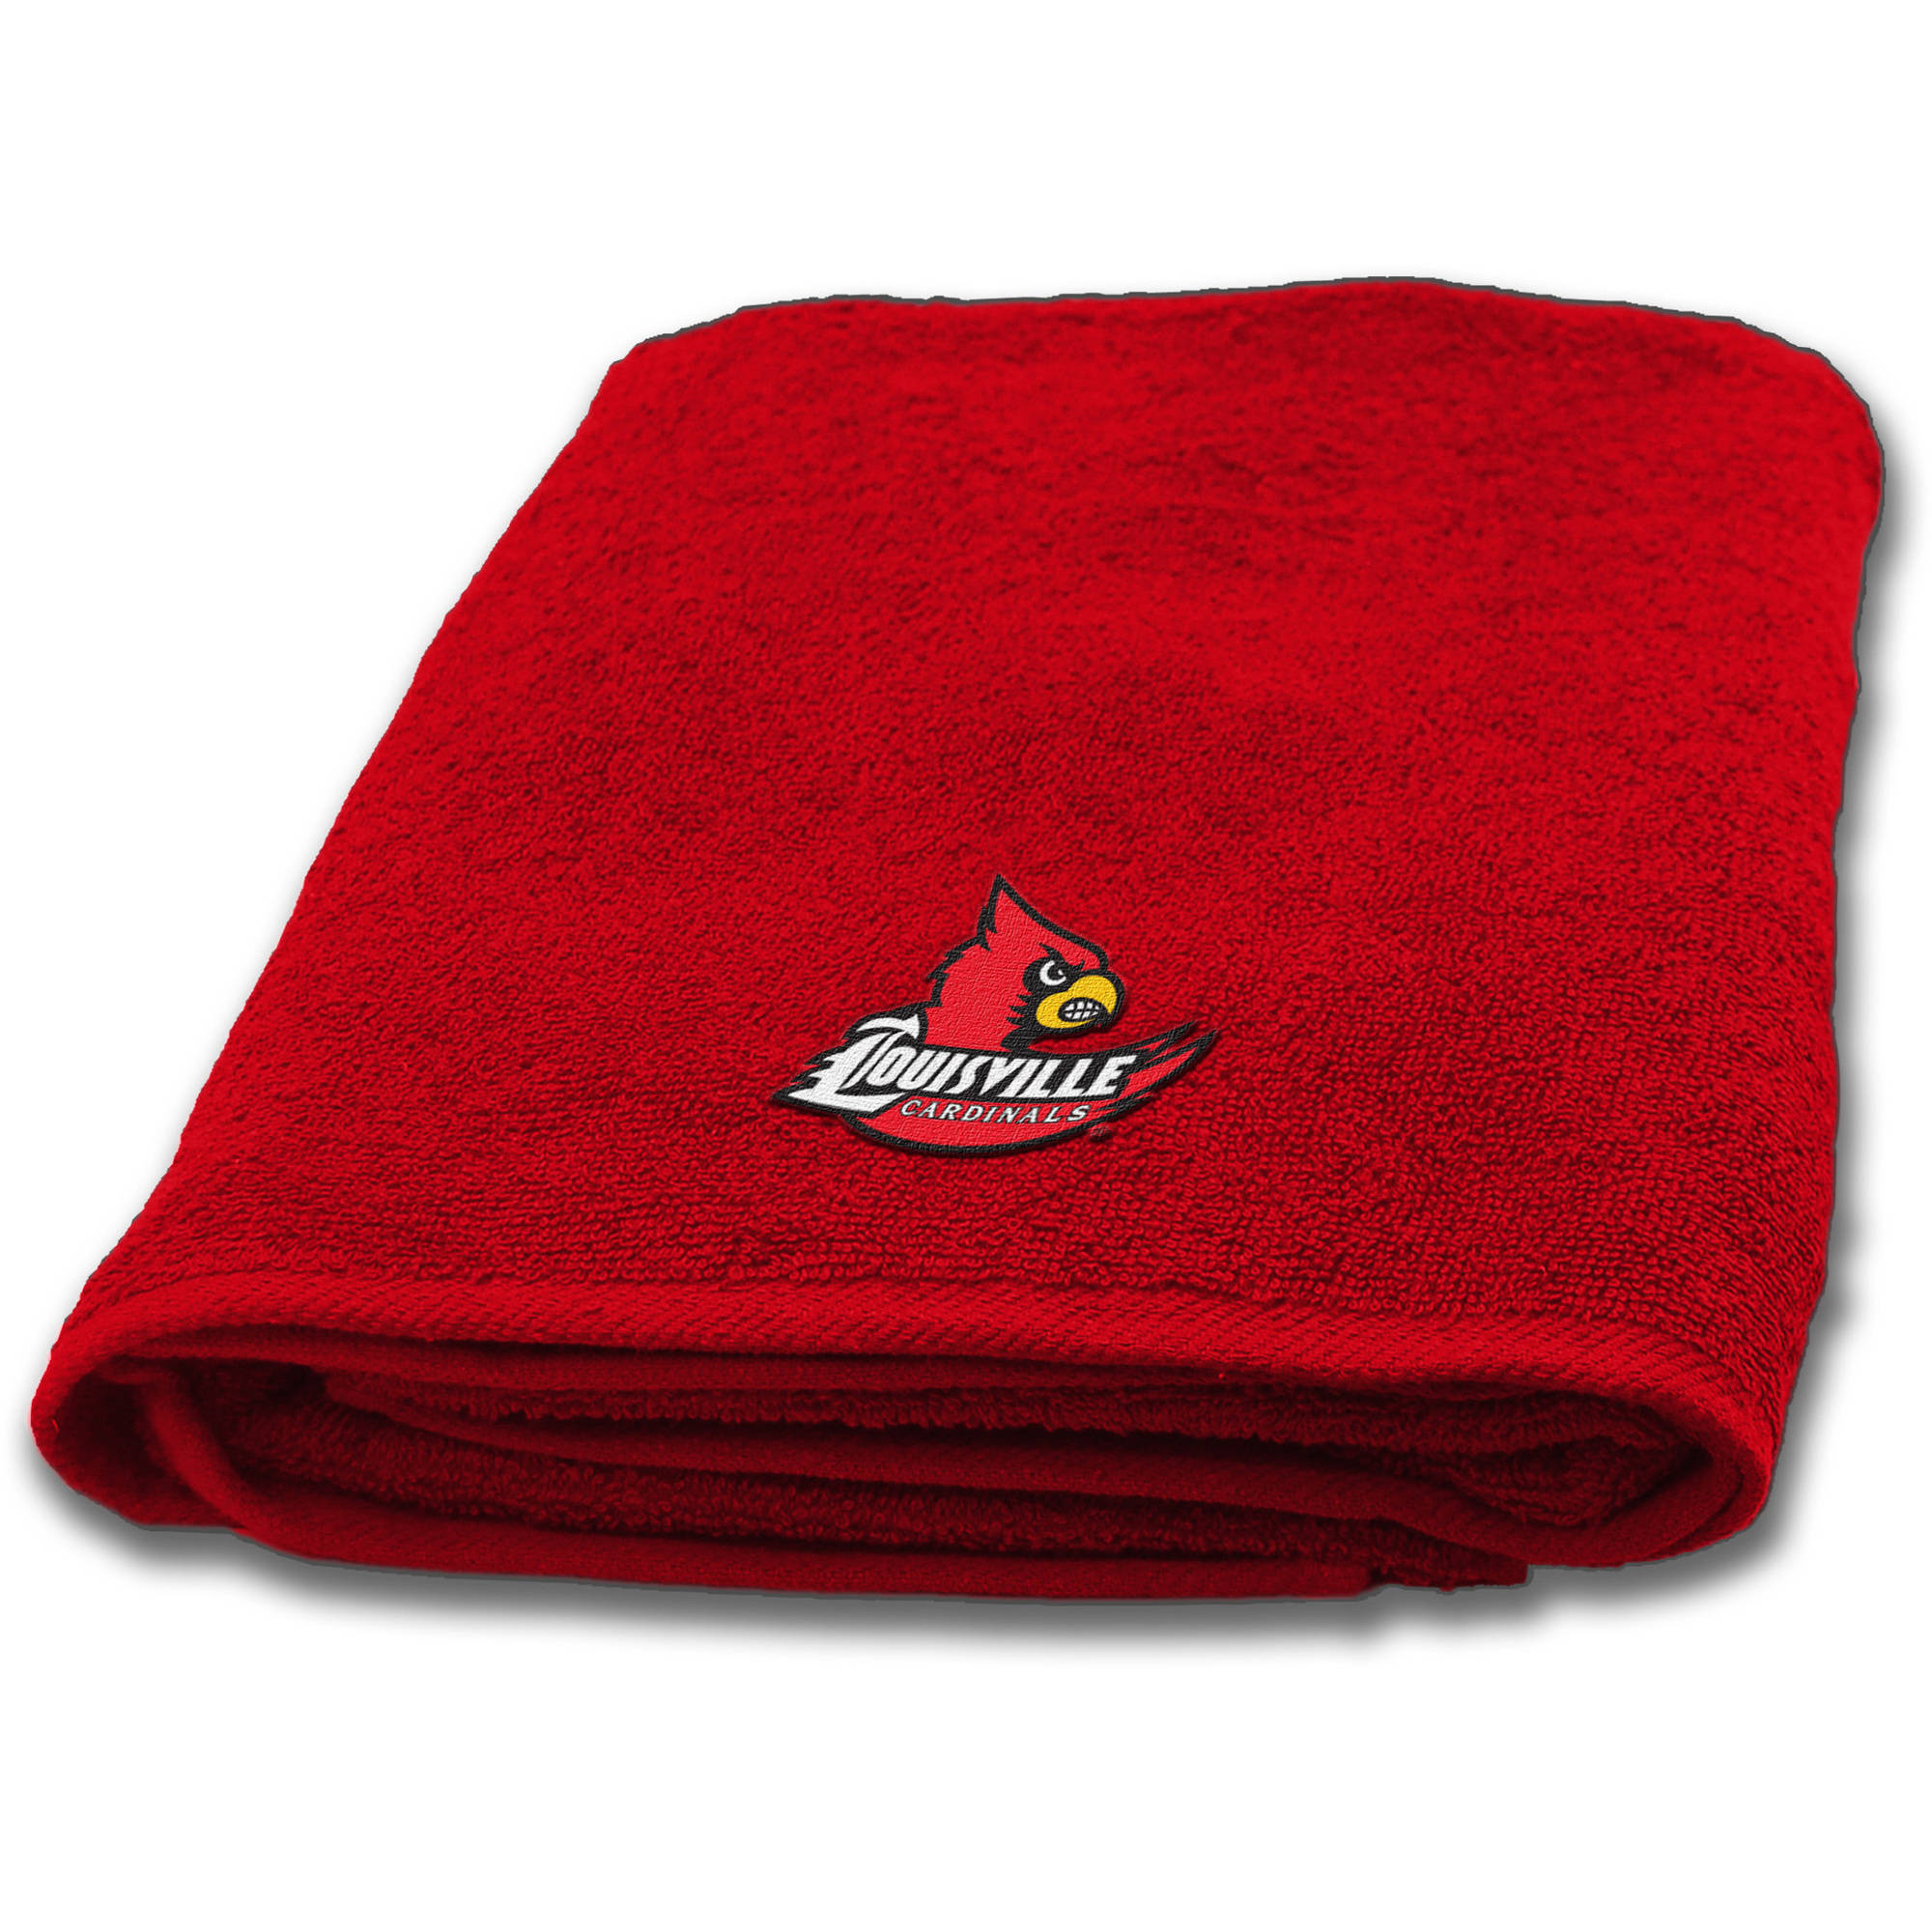 "NCAA Louisville Cardinals 25""x50"" Applique Bath Towel"